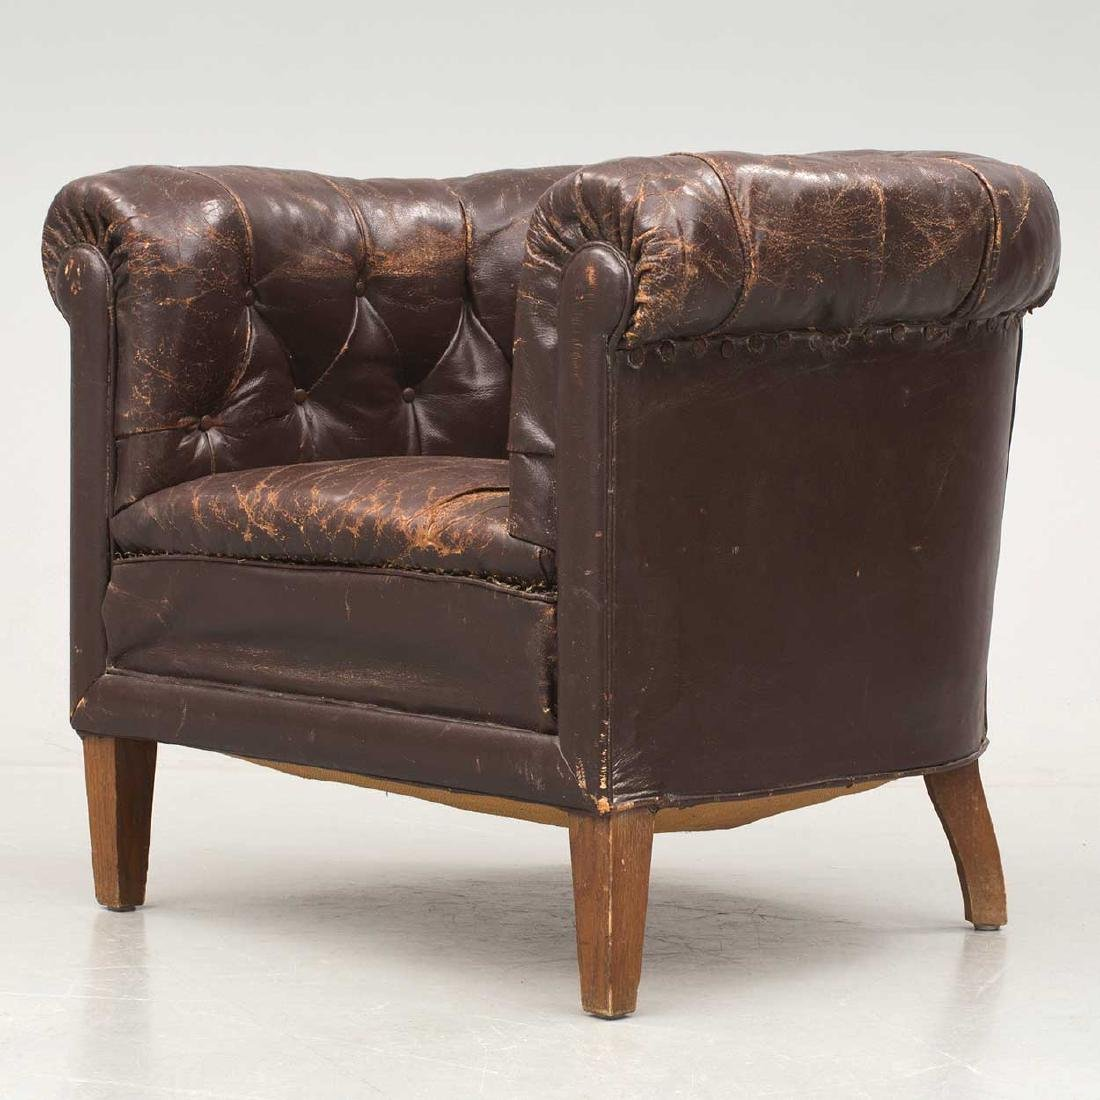 Swedish Tufted Brown Leather Club Chair - 2